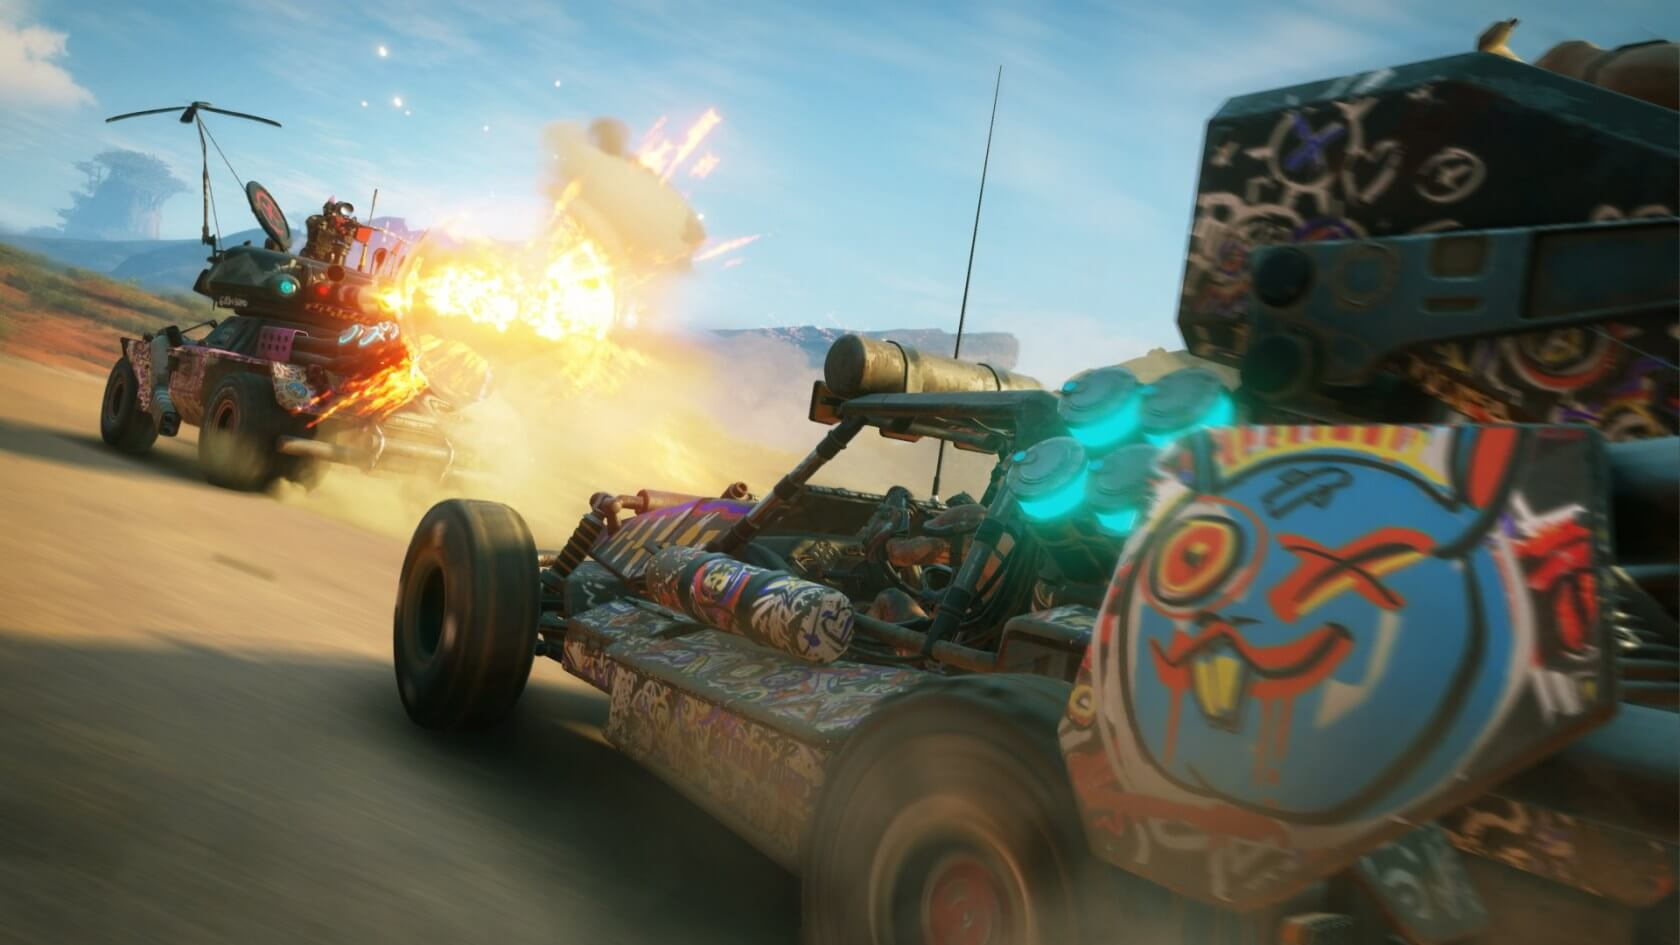 Bethesda removes Denuvo from Rage 2 following day one crack